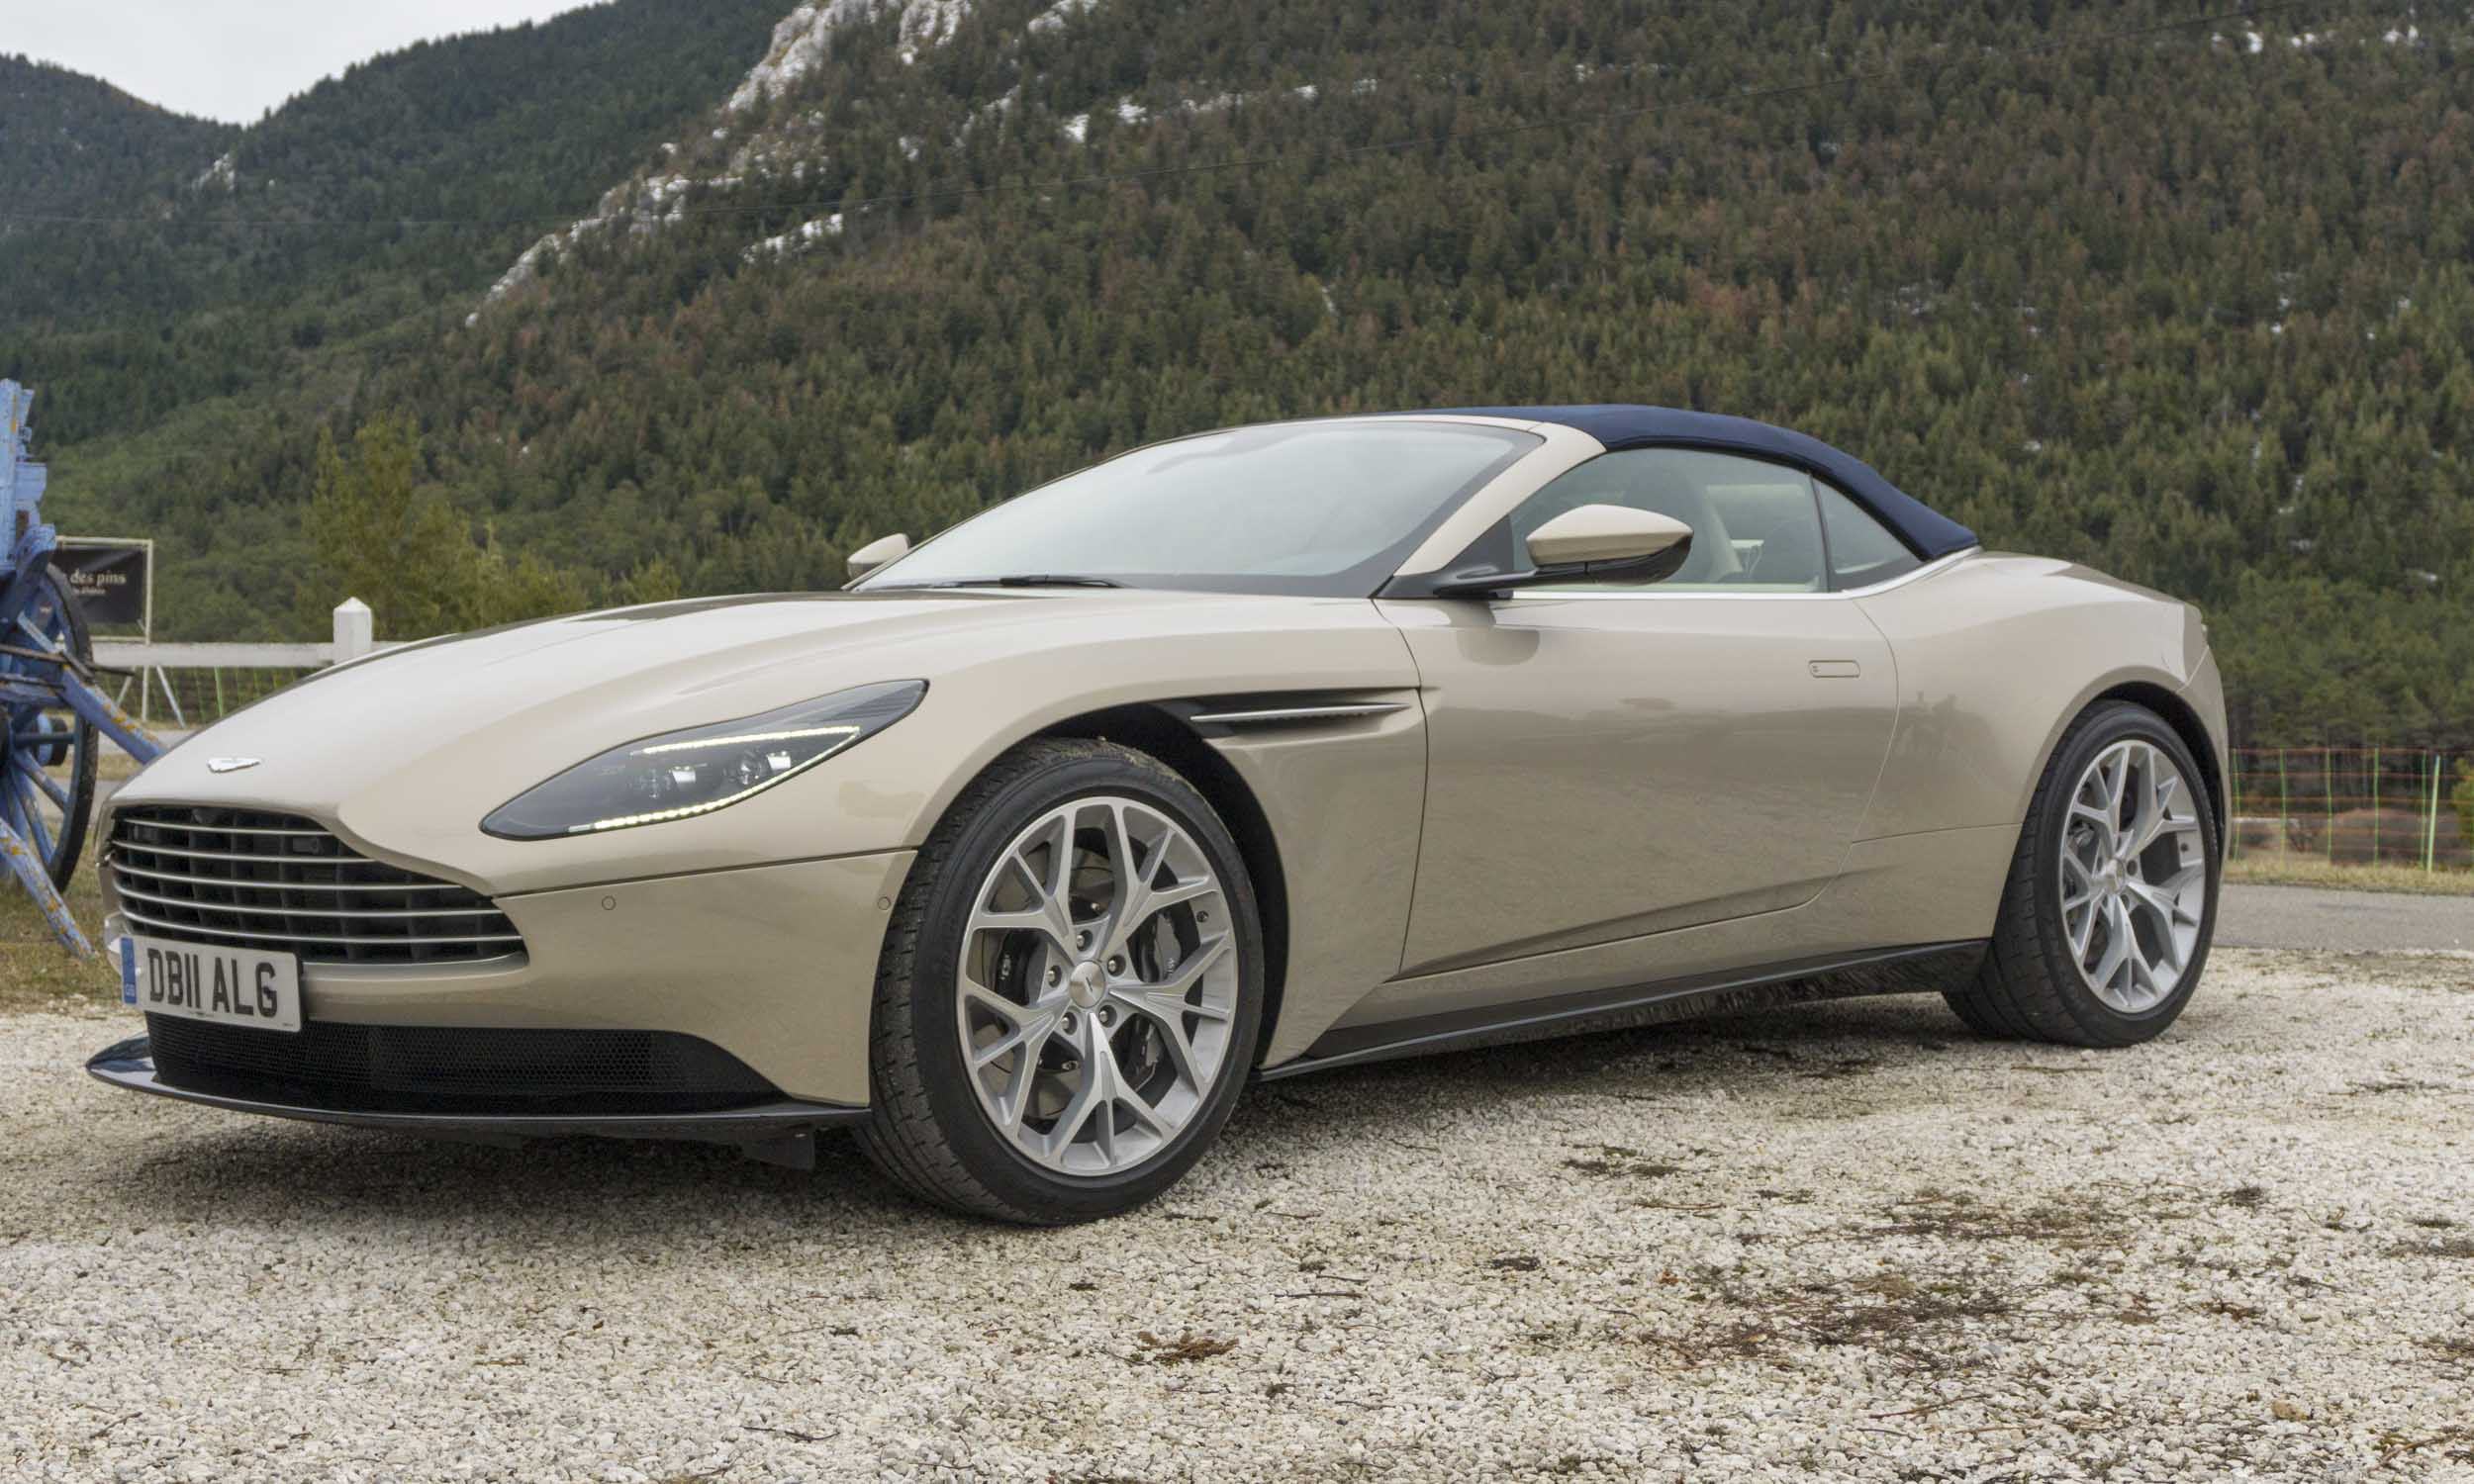 2019 aston martin db11 volante first drive review autonxt. Black Bedroom Furniture Sets. Home Design Ideas